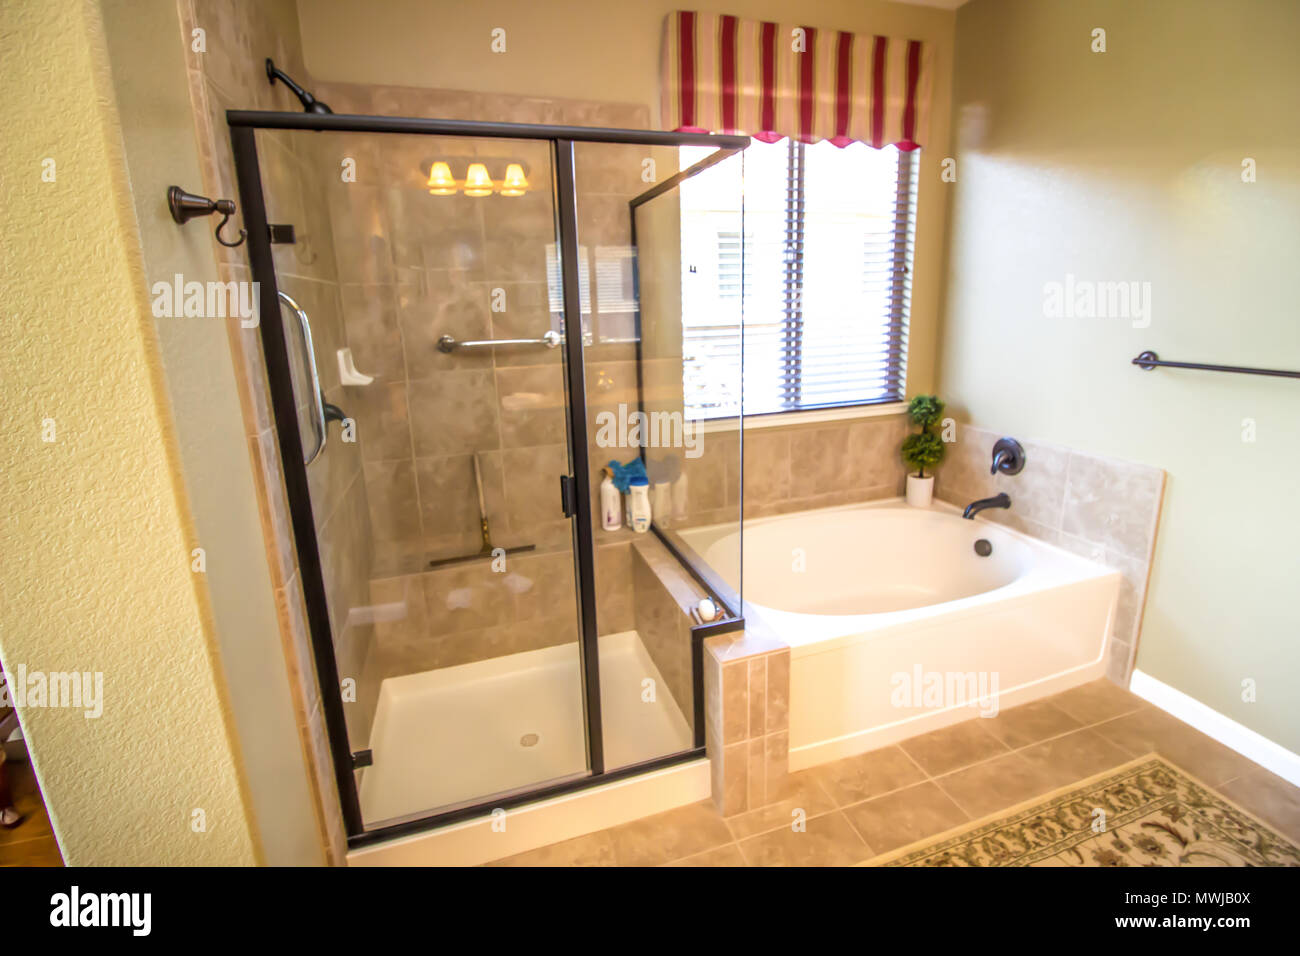 modernes bad mit gl serner dusche und badewanne stockfoto bild 187873866 alamy. Black Bedroom Furniture Sets. Home Design Ideas